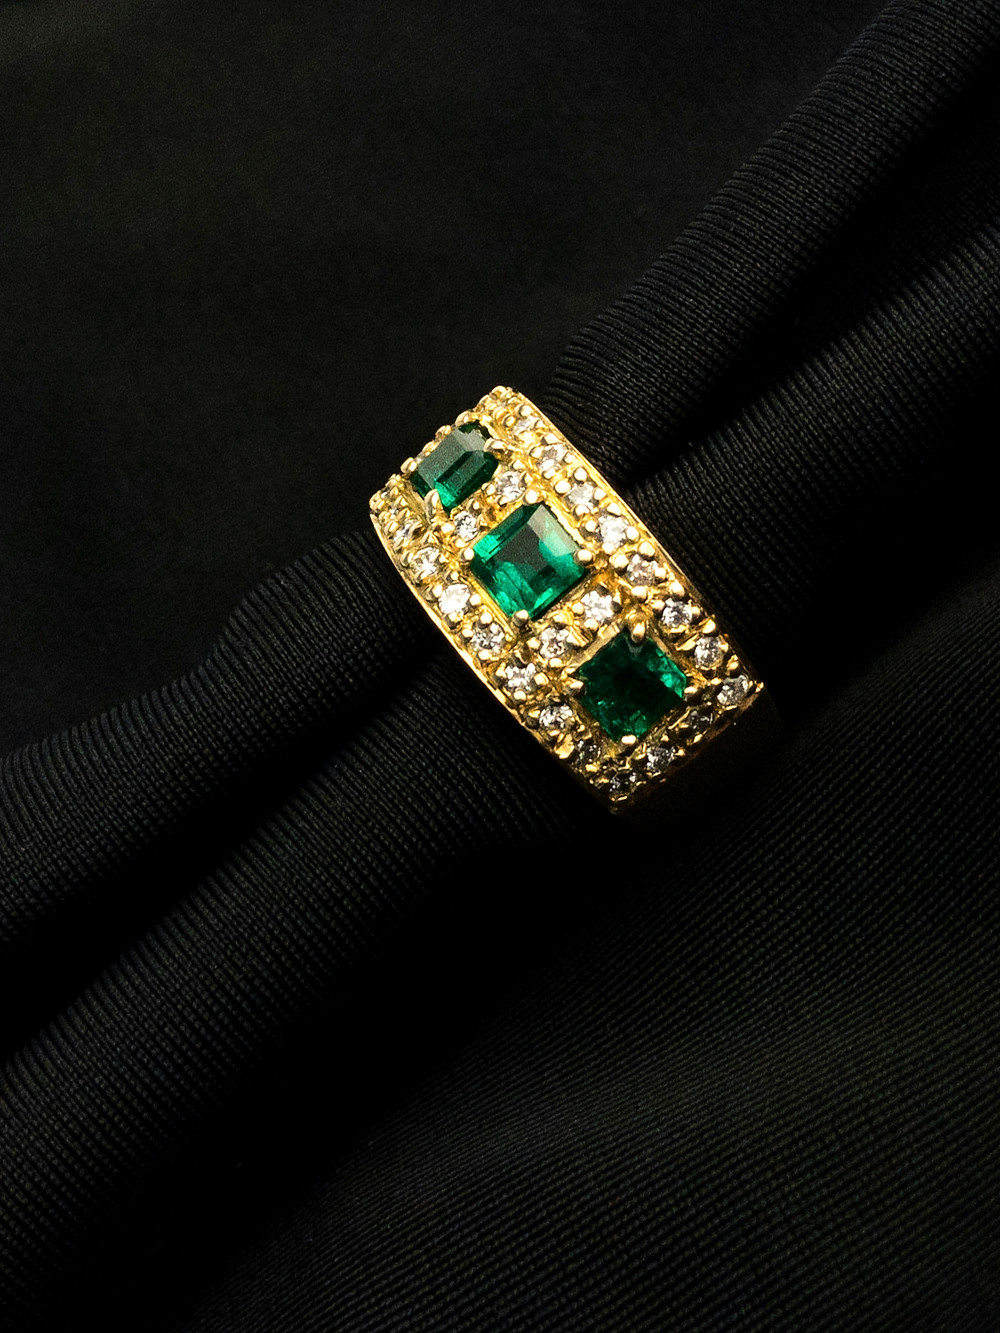 CURIOSITIES OF OUR EMERALDS